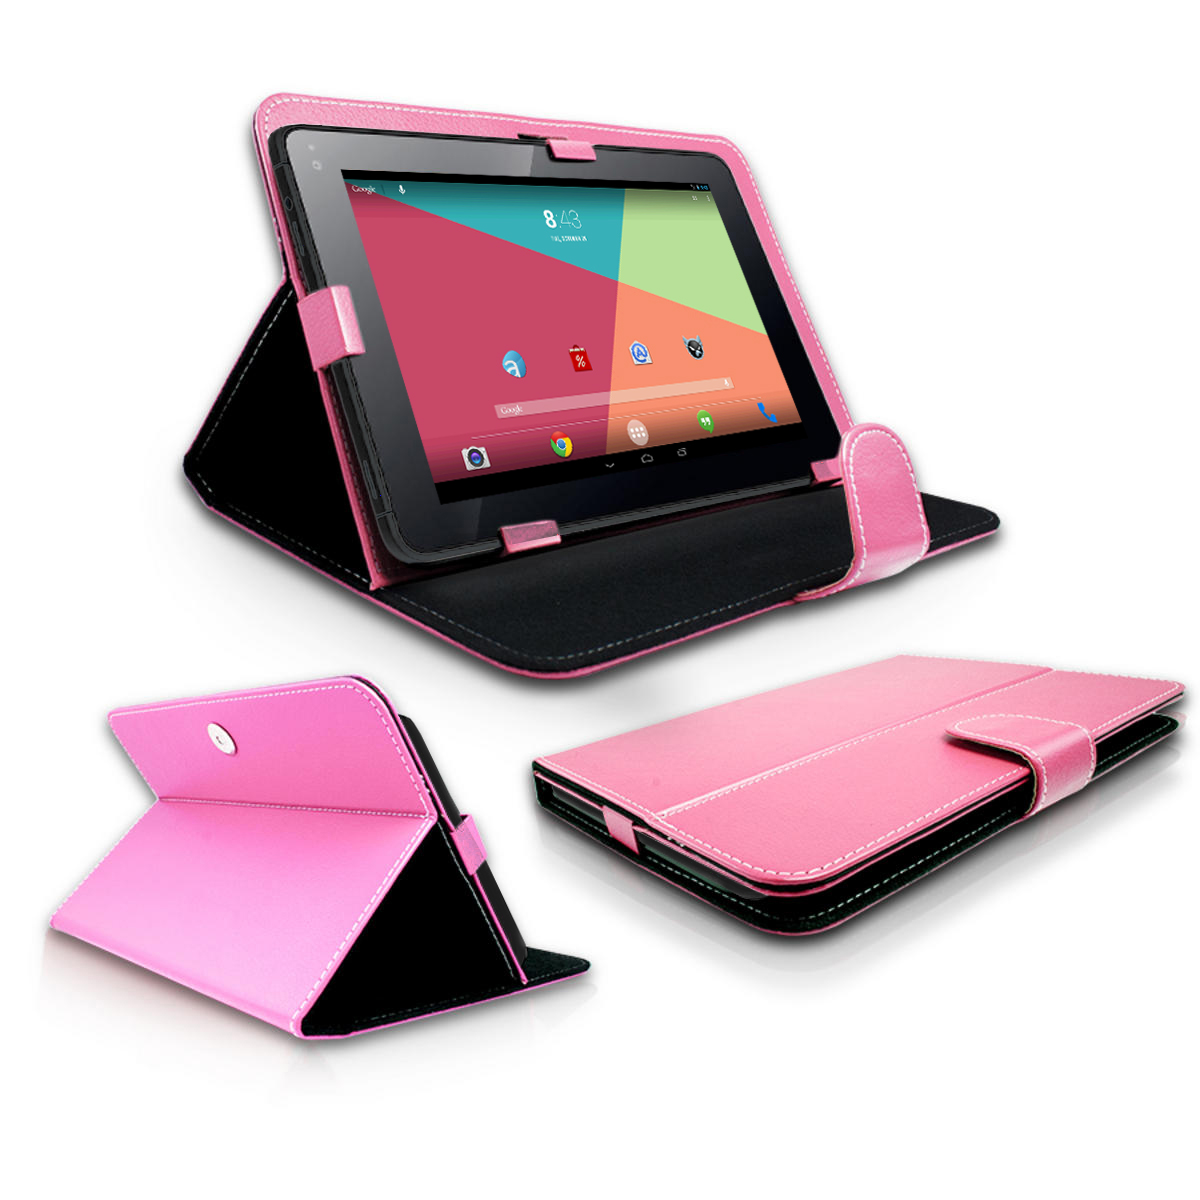 2tablet-pink-case1.jpg